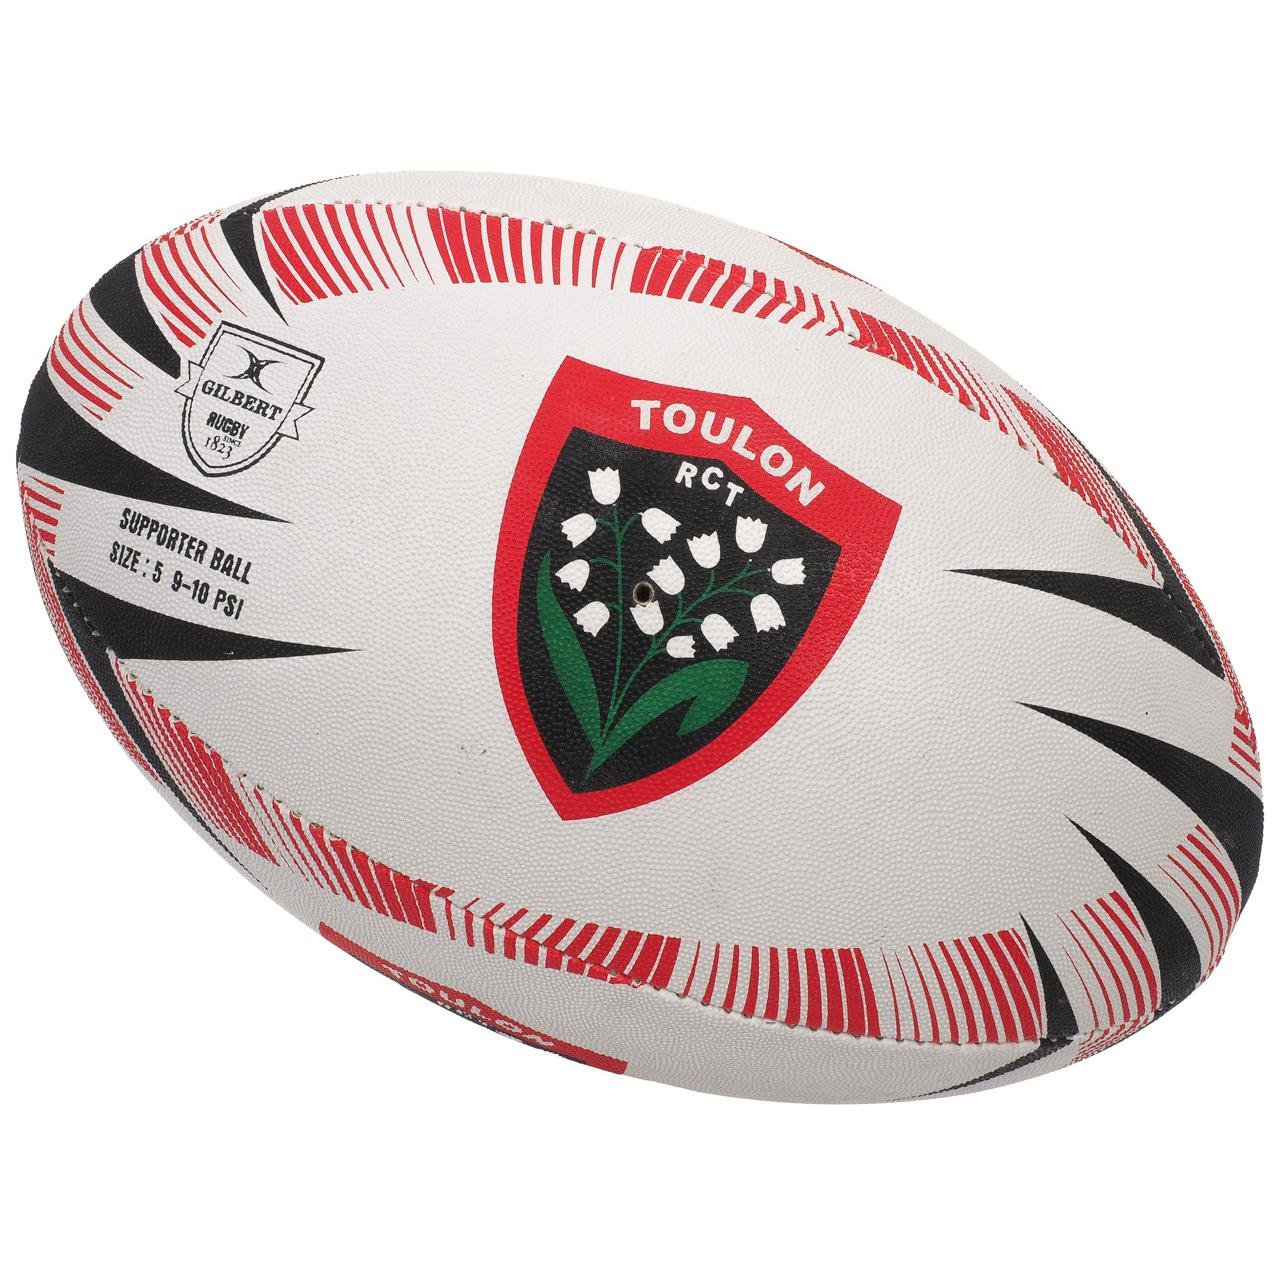 Gilbert Ballon Rugby Rugby Club Toulonnais - Supporter - T5 5024686283170